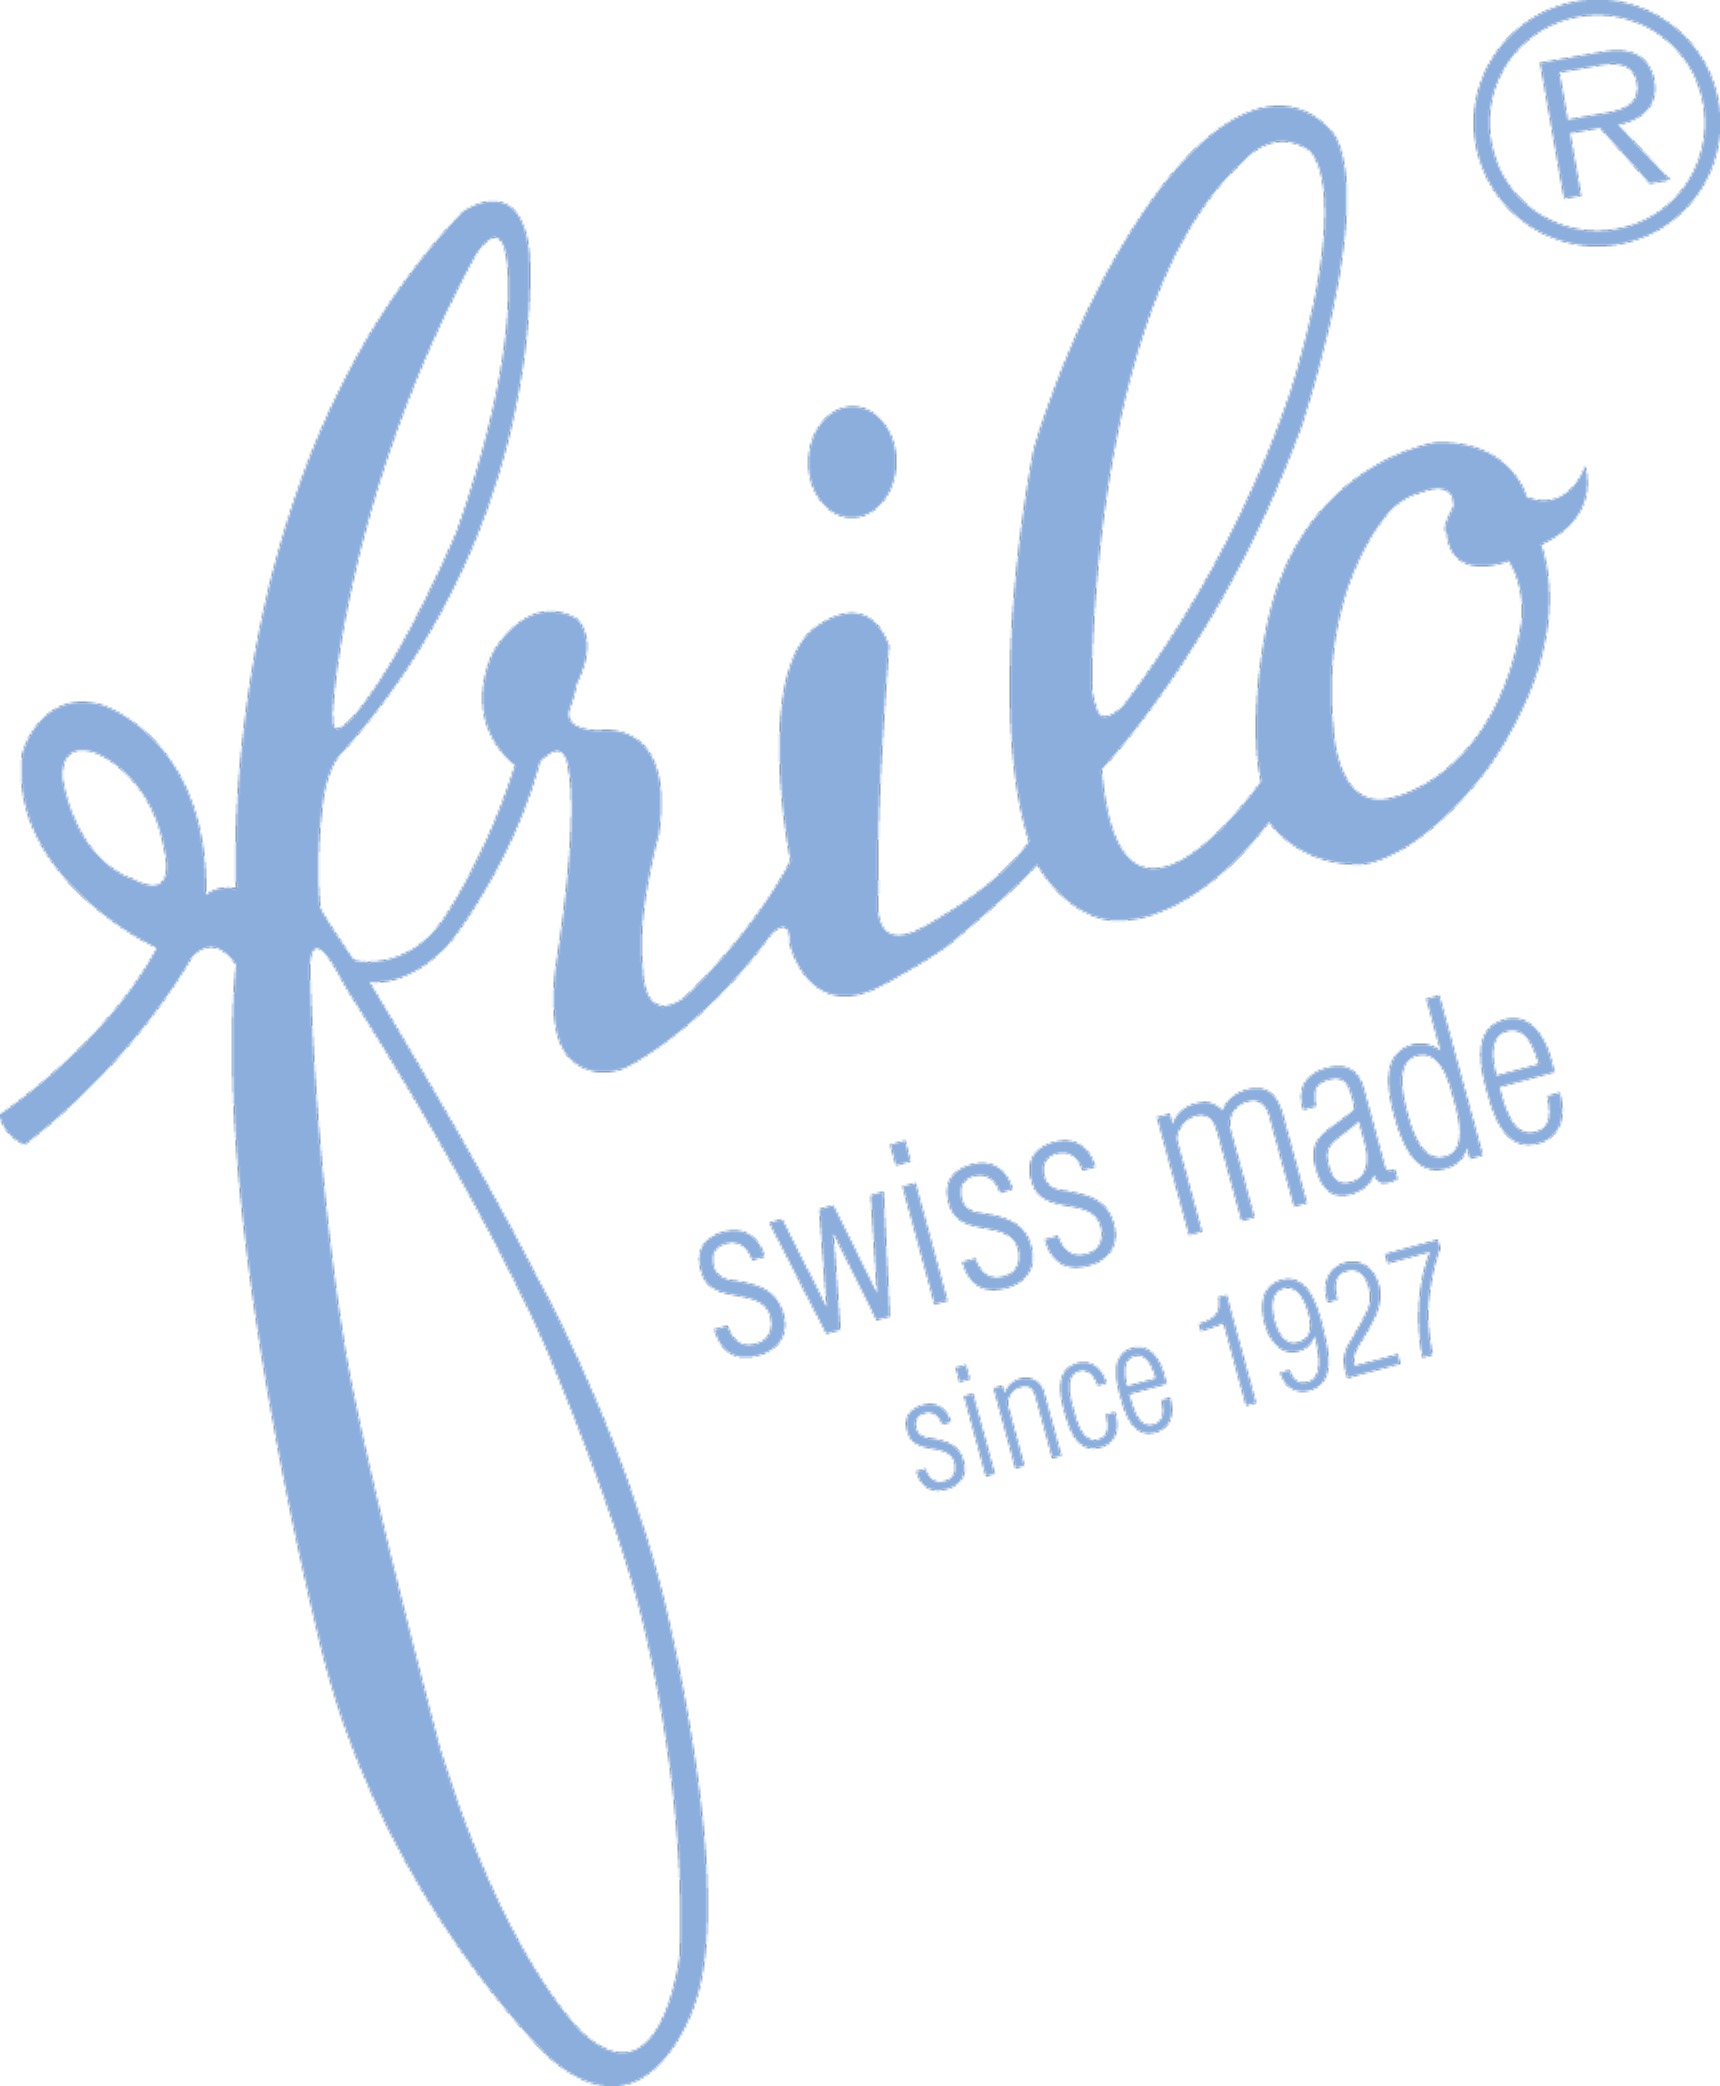 Frilo swiss made